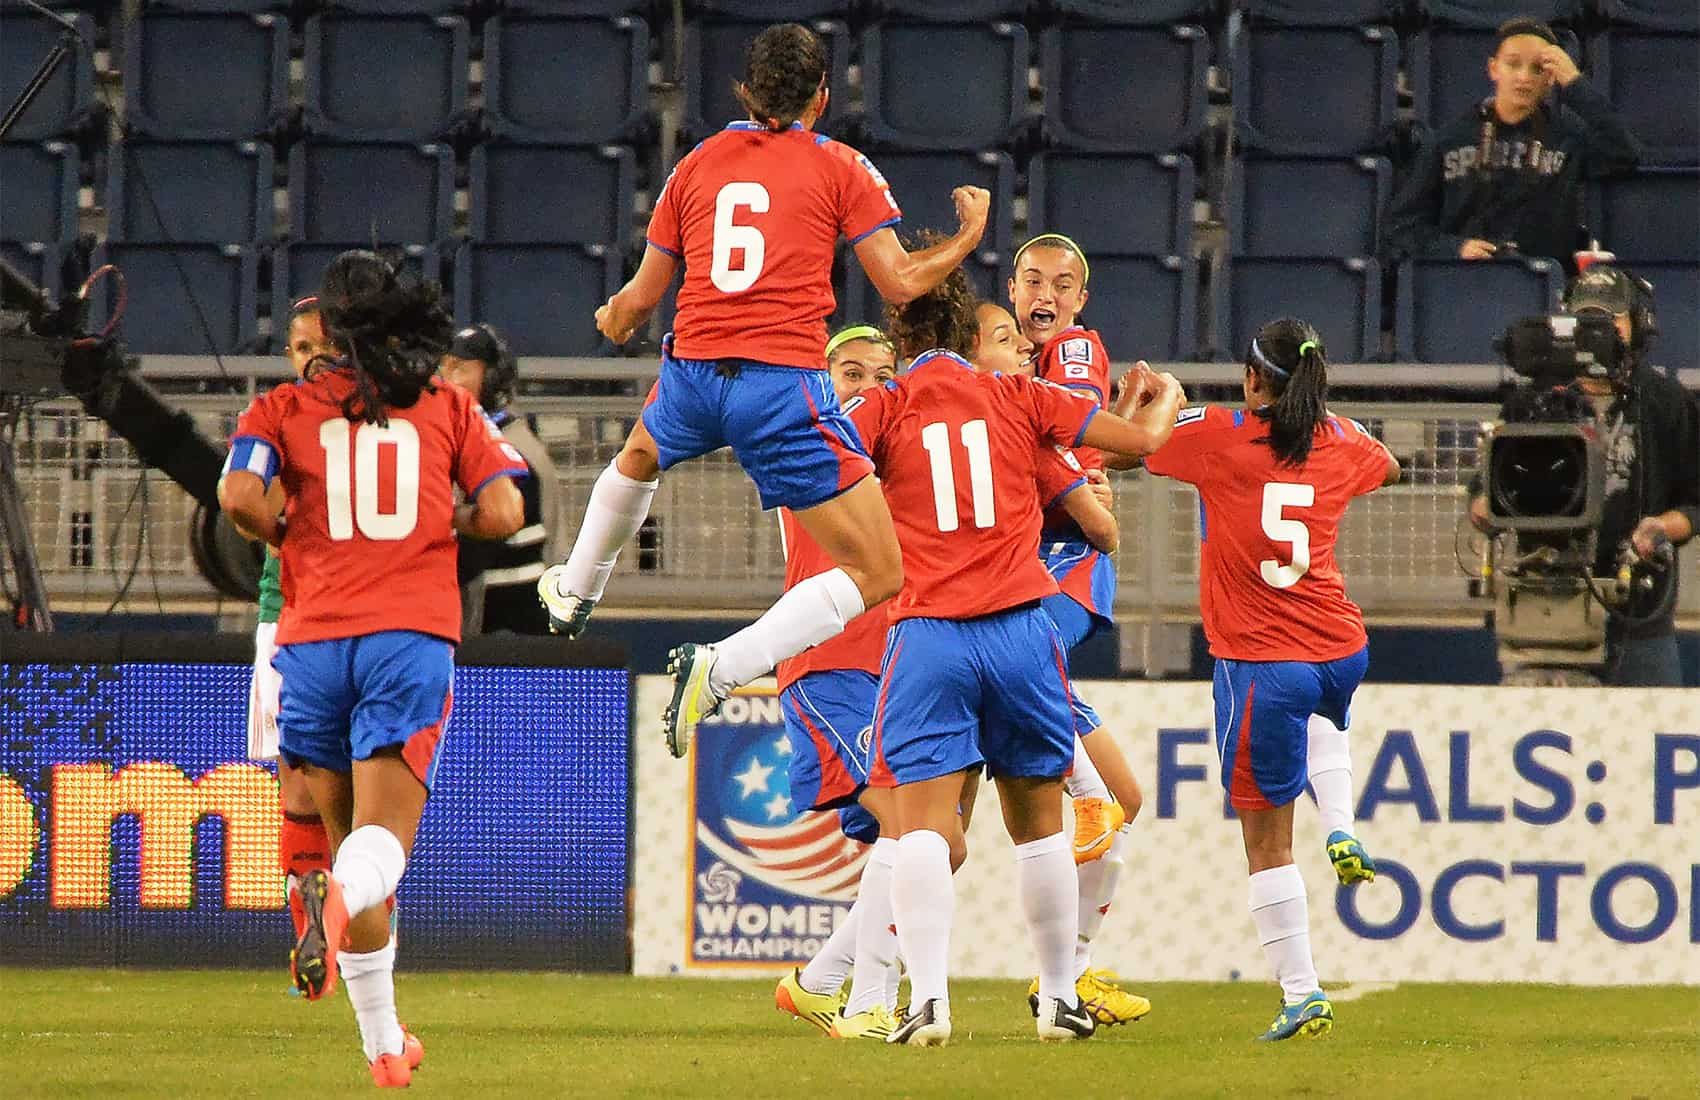 a2dde386f30 Costa Rica scores early in the 8th minute to beat Mexico in the opening  match of the FIFA qualifier tournament for the Canada 2015 Women s World Cup .